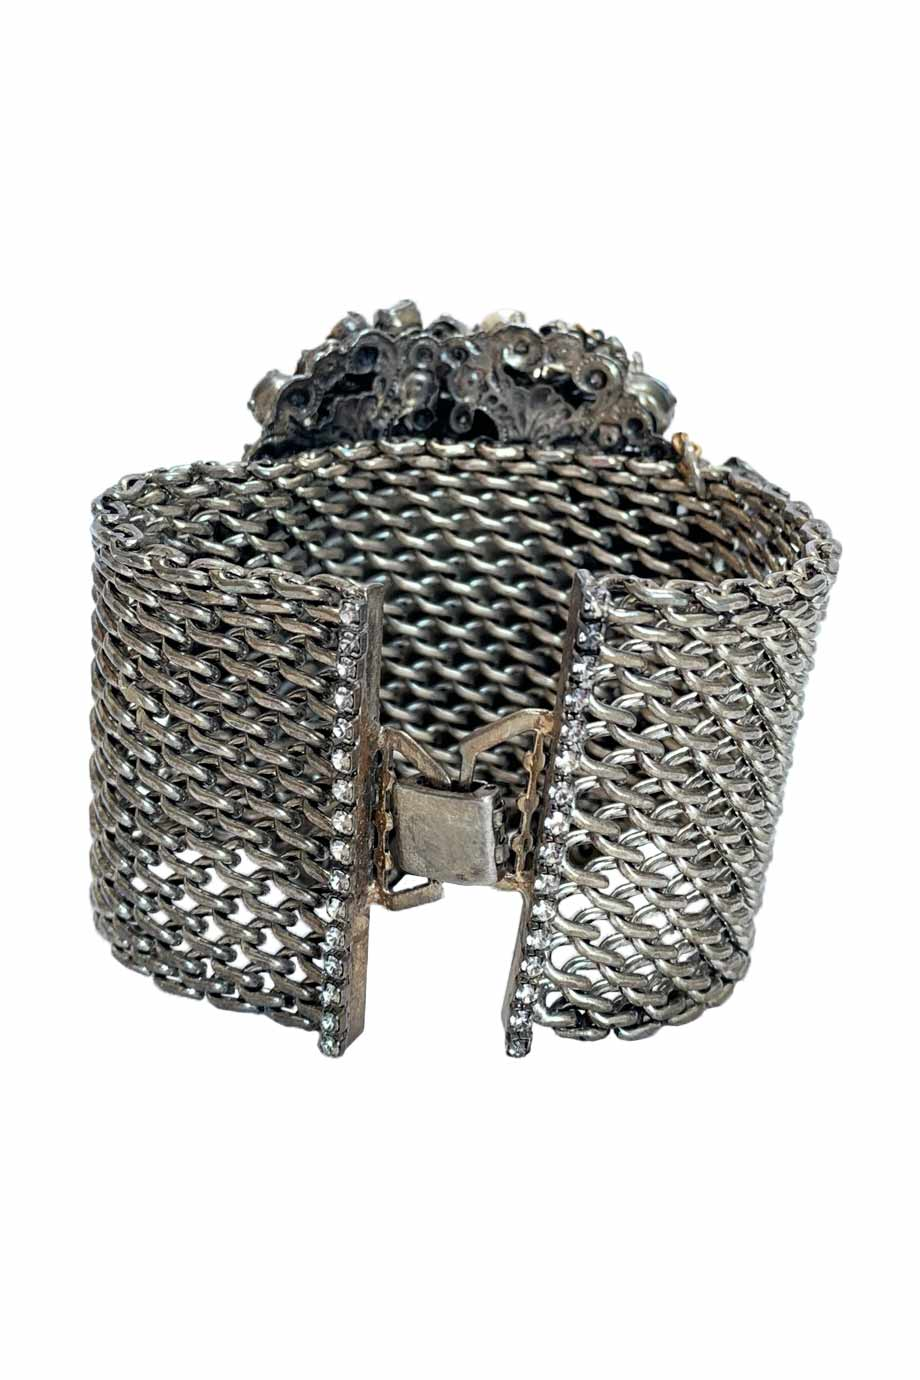 Erickson Beamon Crystal + Pearl Embellished Silver Glenda Cuff Bracelet-Style Therapy